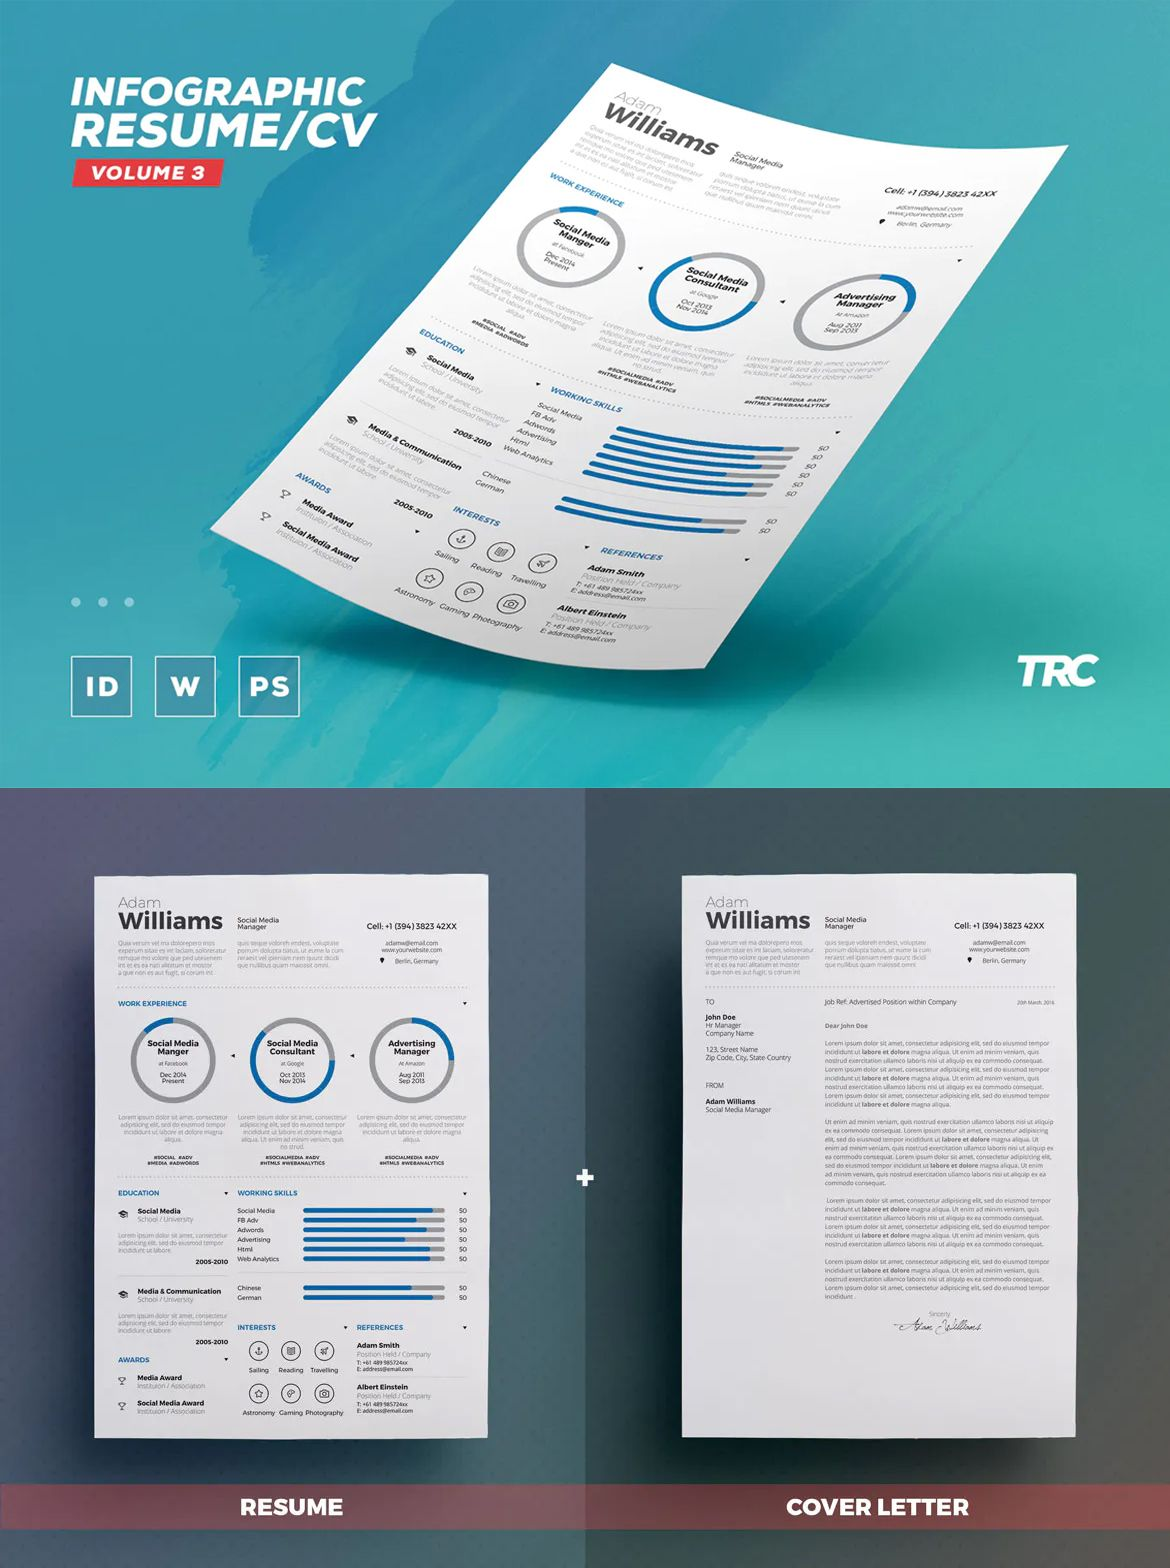 Infographic Resume/Cv Volume 3 by paolo6180 on Resume cv